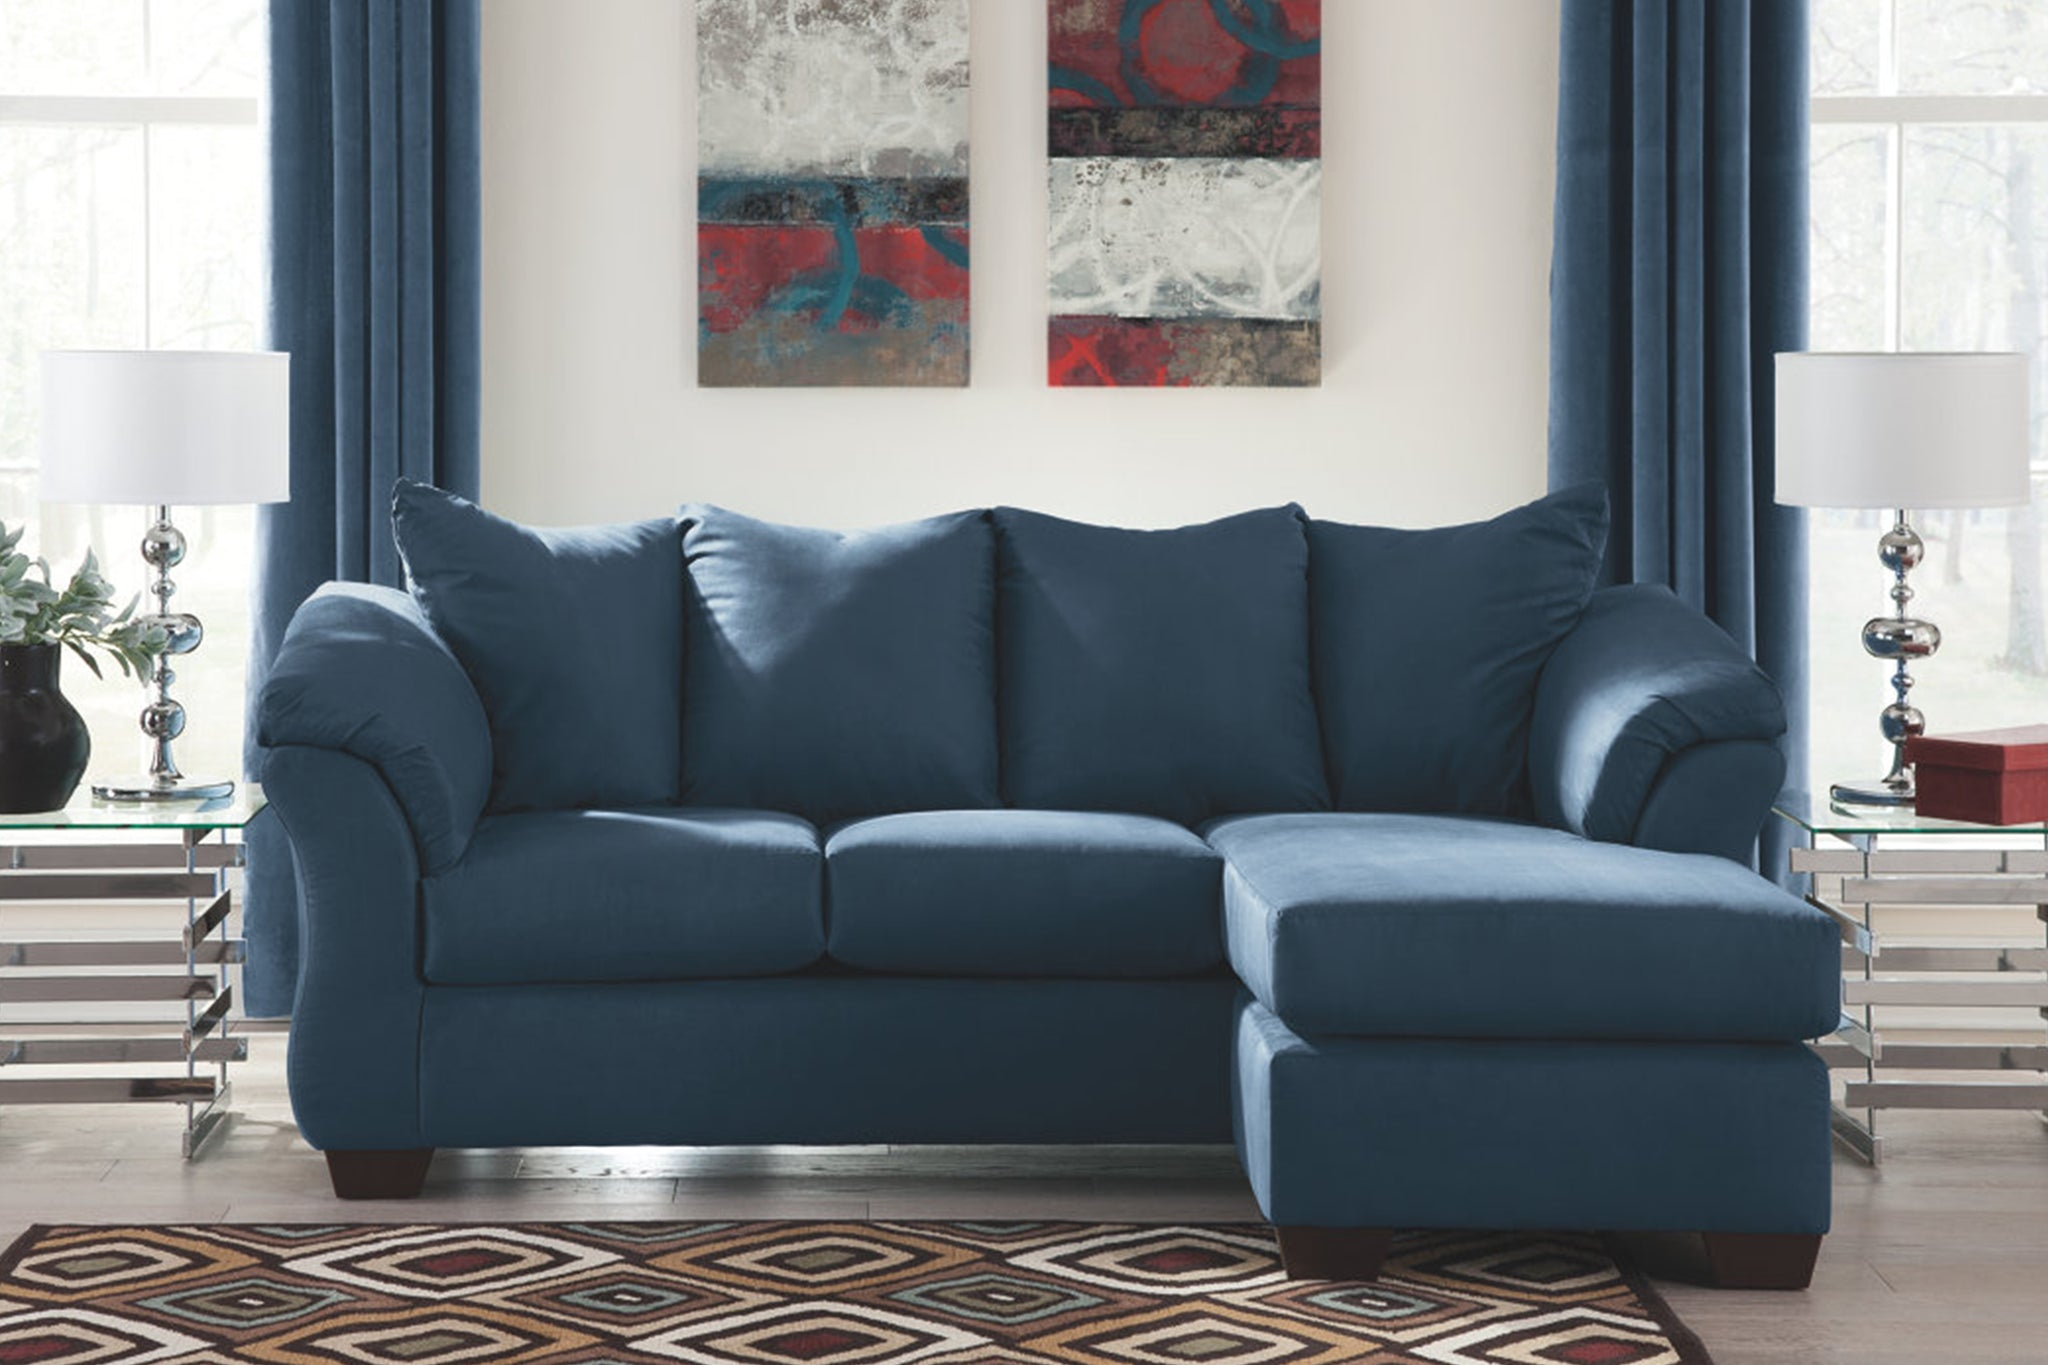 Groovy Darcy Sofa Chaise Gmtry Best Dining Table And Chair Ideas Images Gmtryco